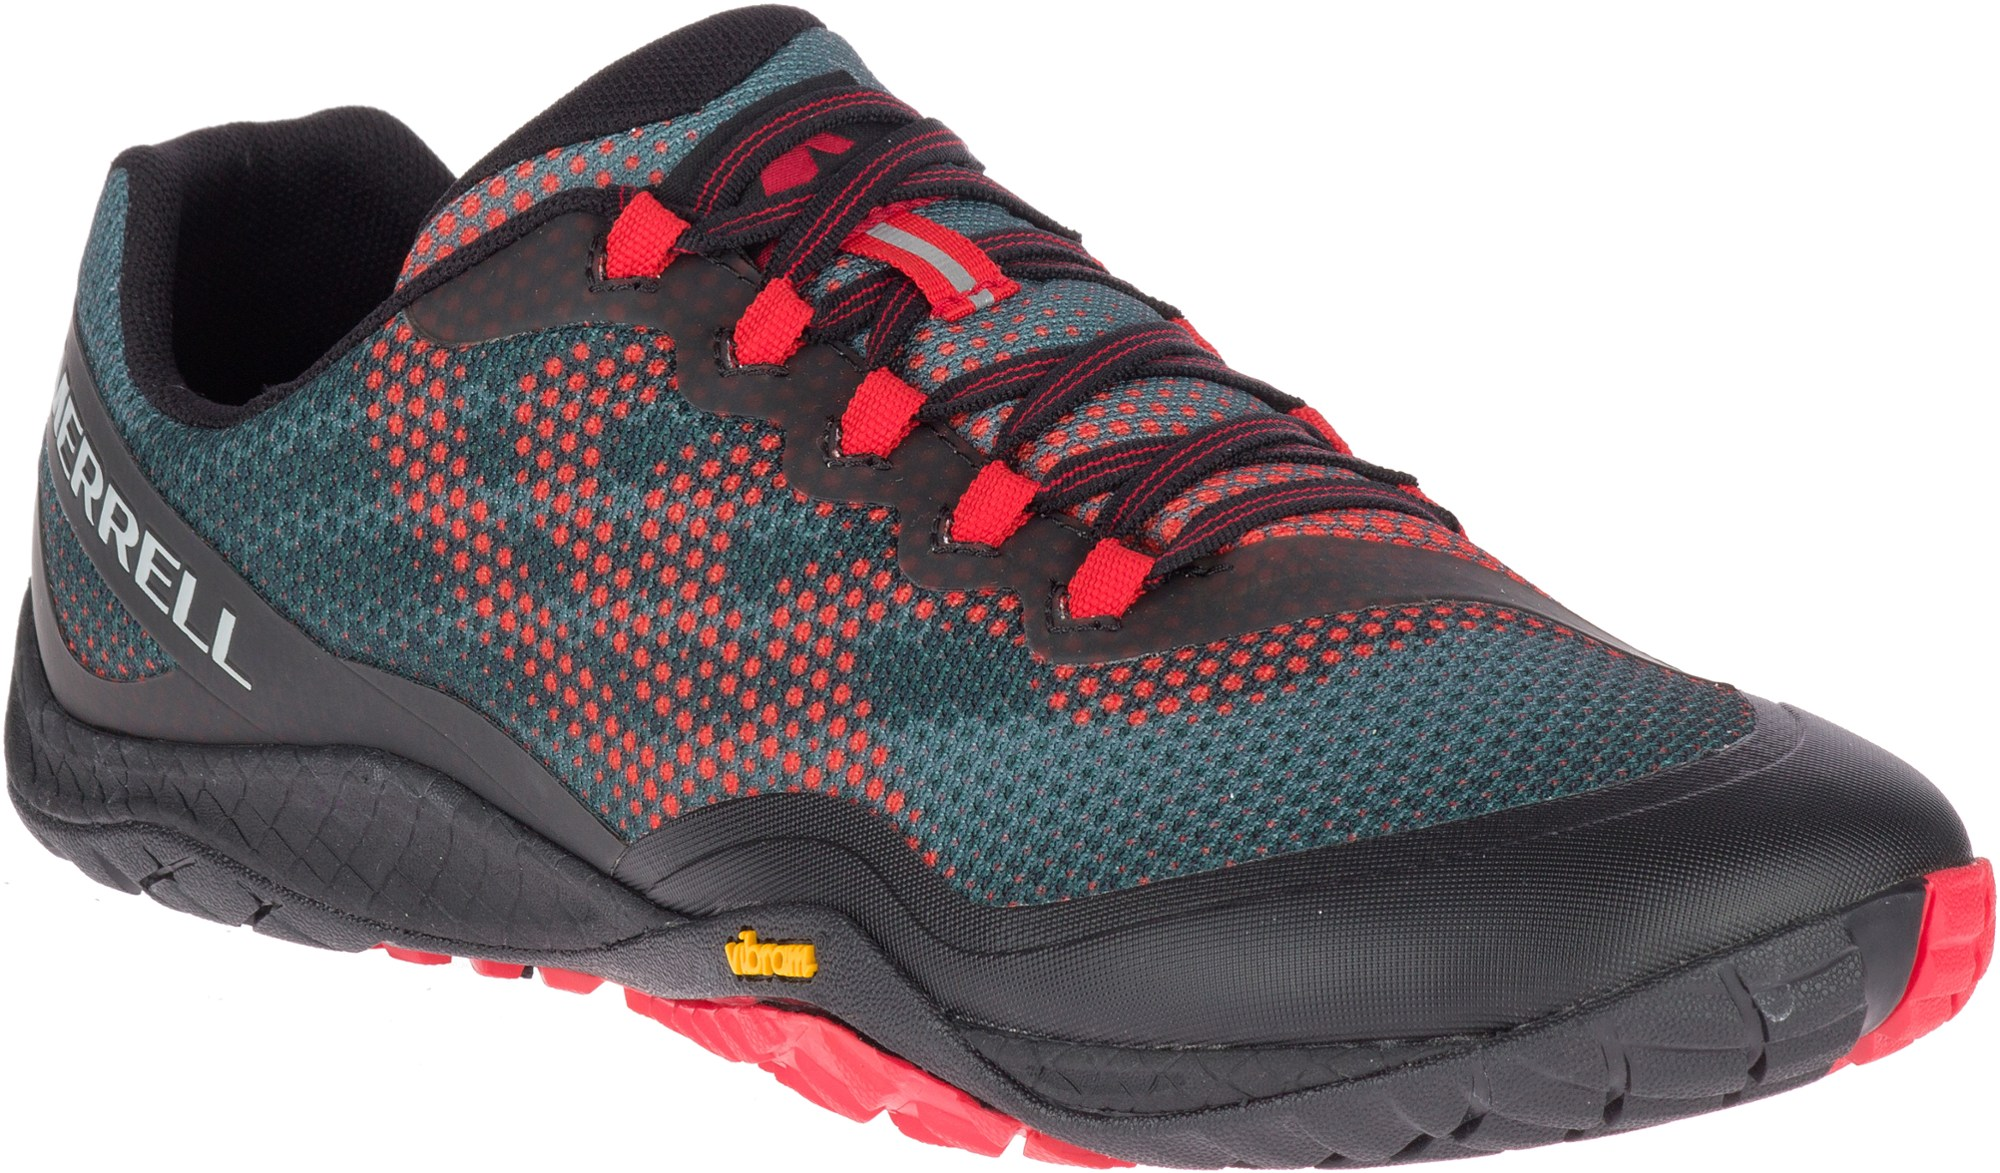 Merrell Trail Glove 4 Shield Trail-Running Shoes - Men's